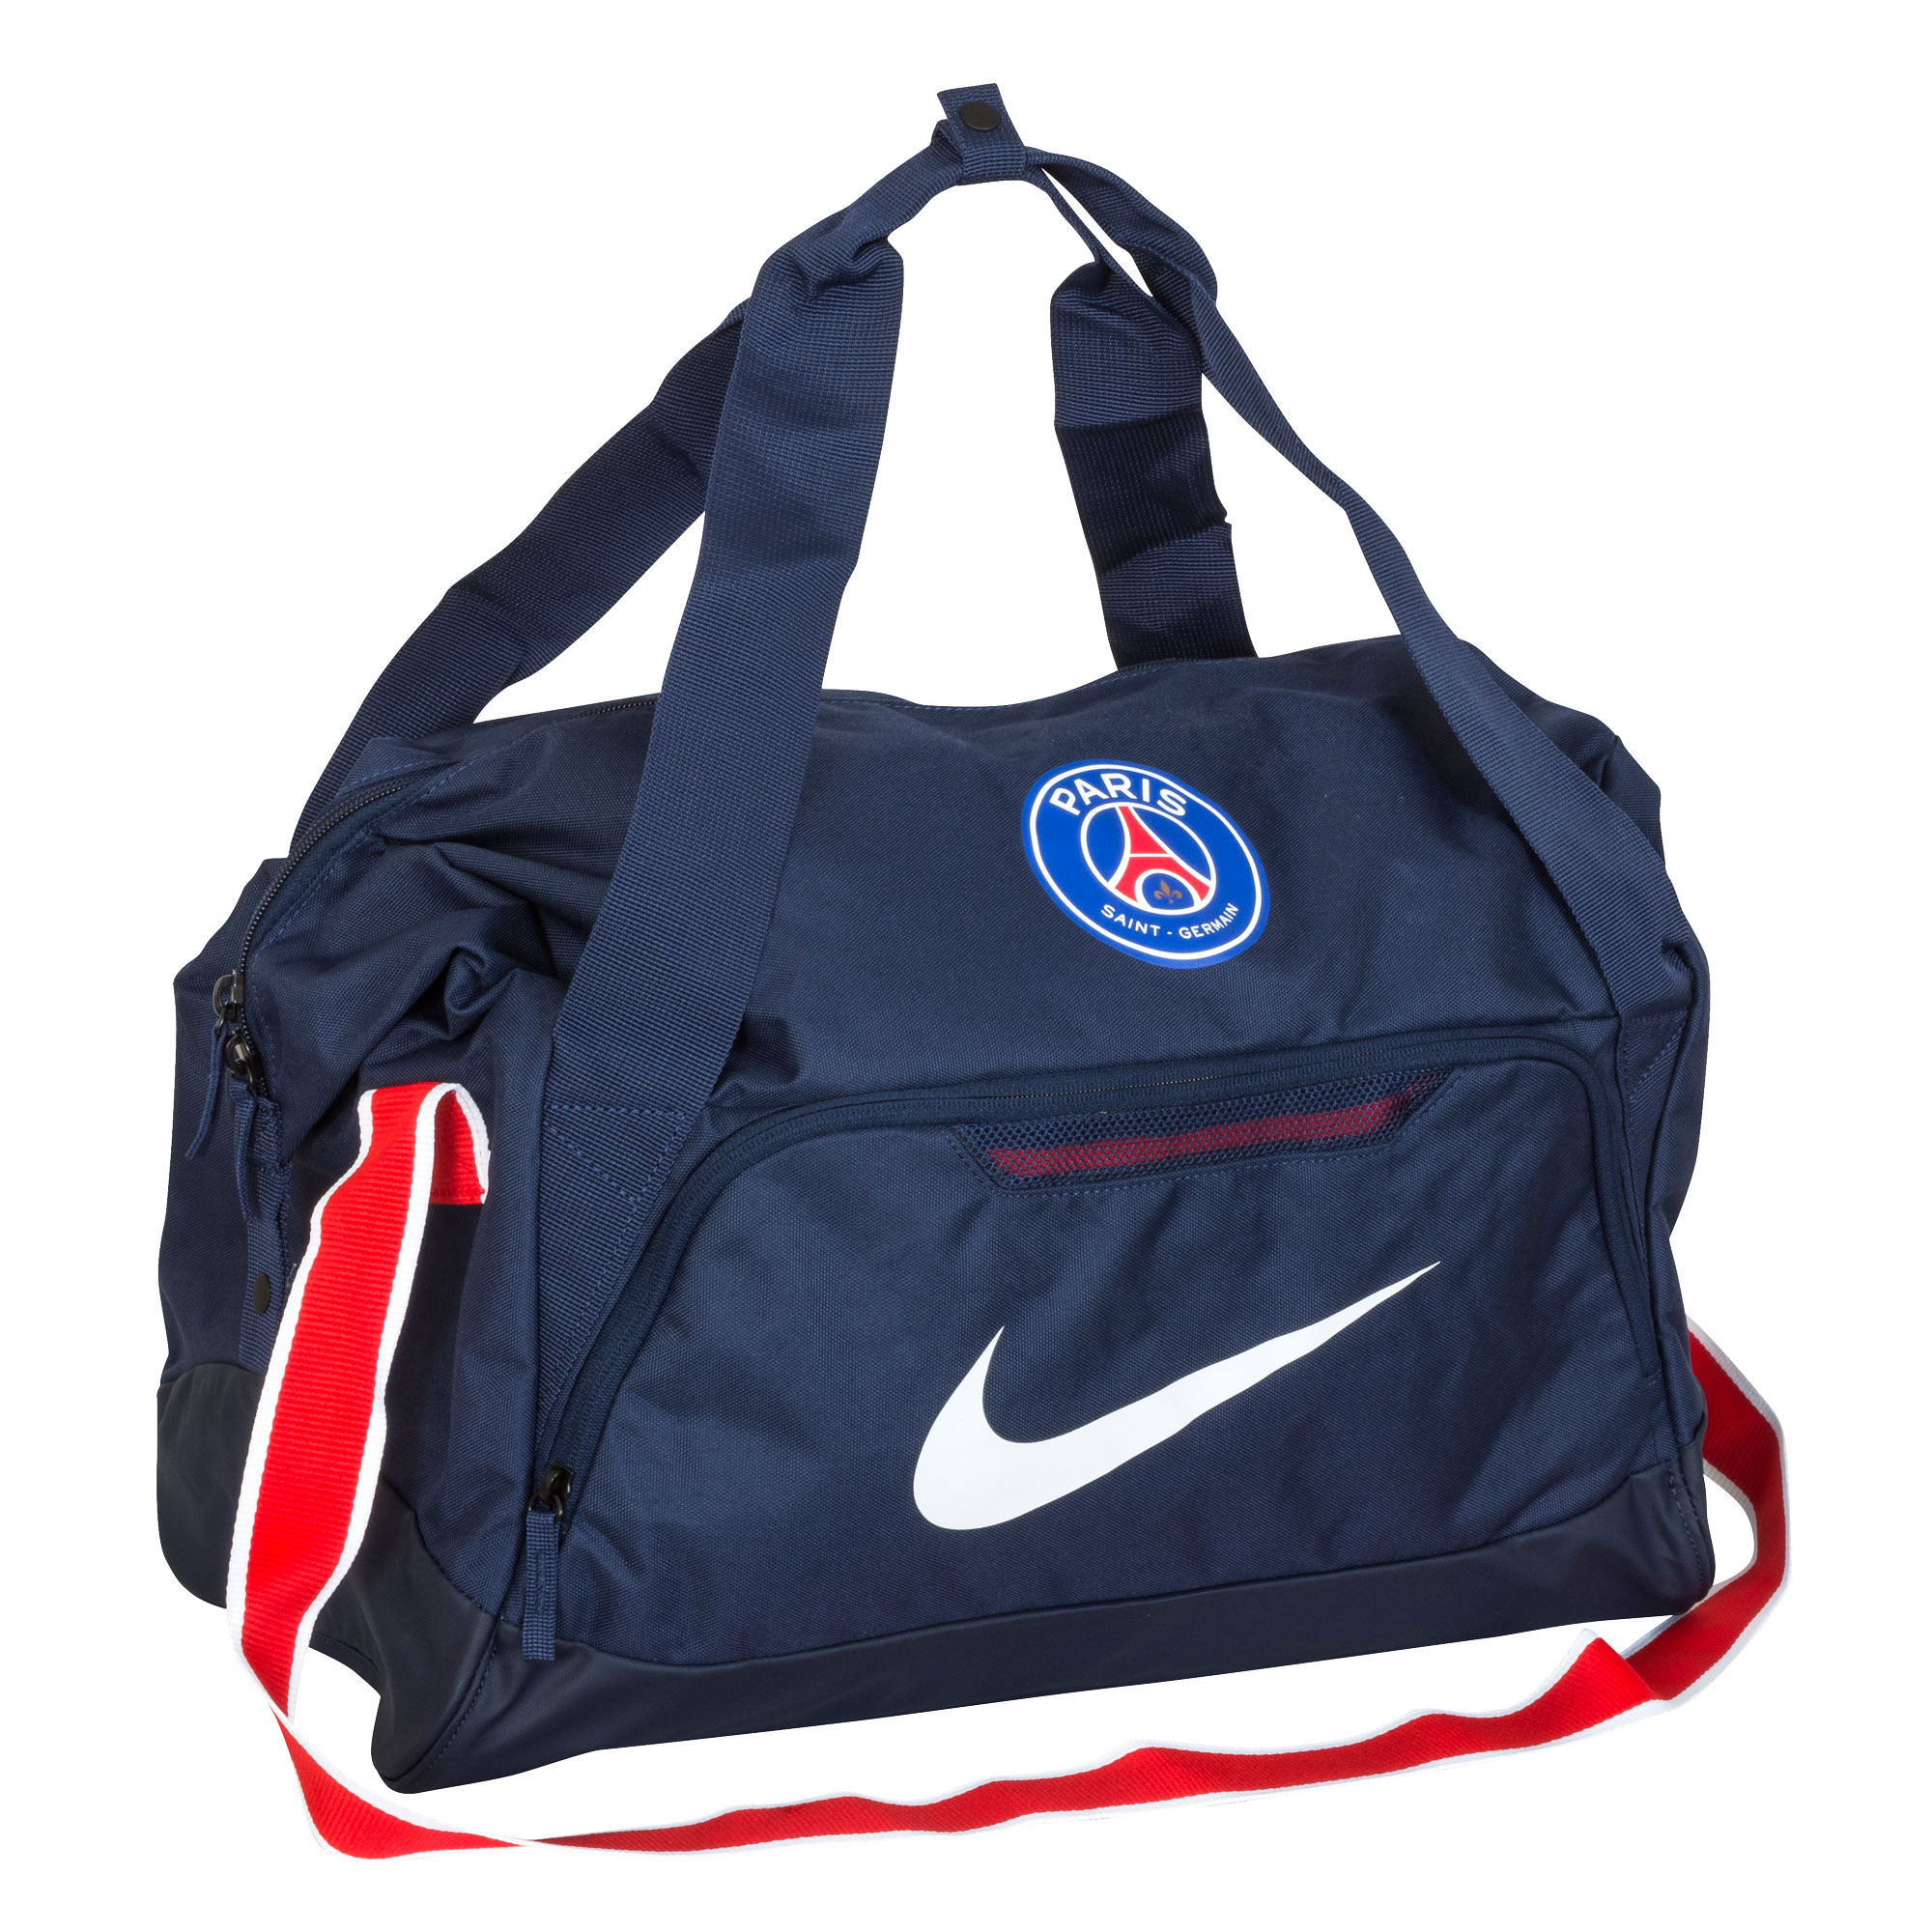 PSG Shield Compact Duffle Bag 2016 / 2017 - Navy - OS